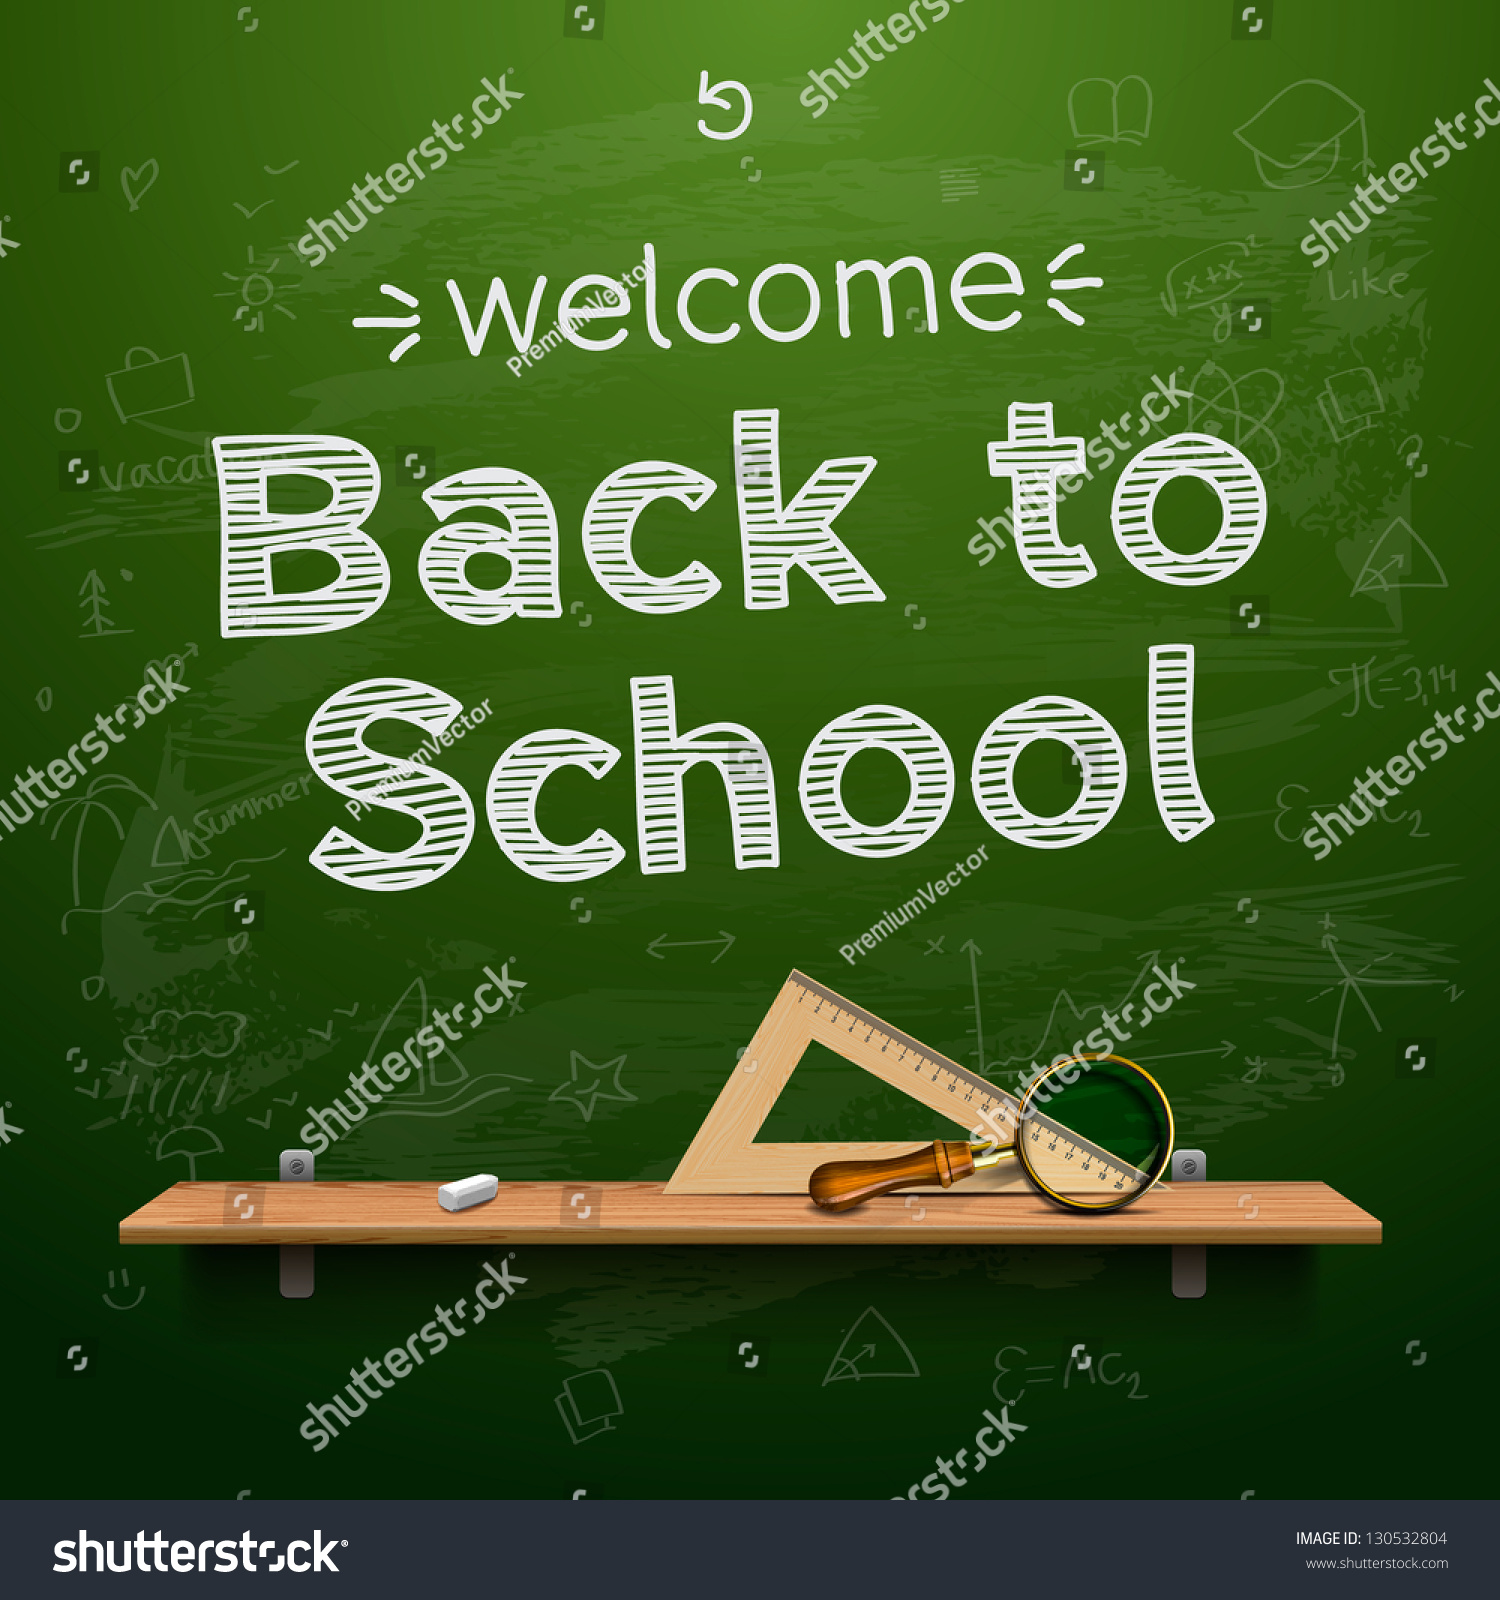 back to school background - photo #25